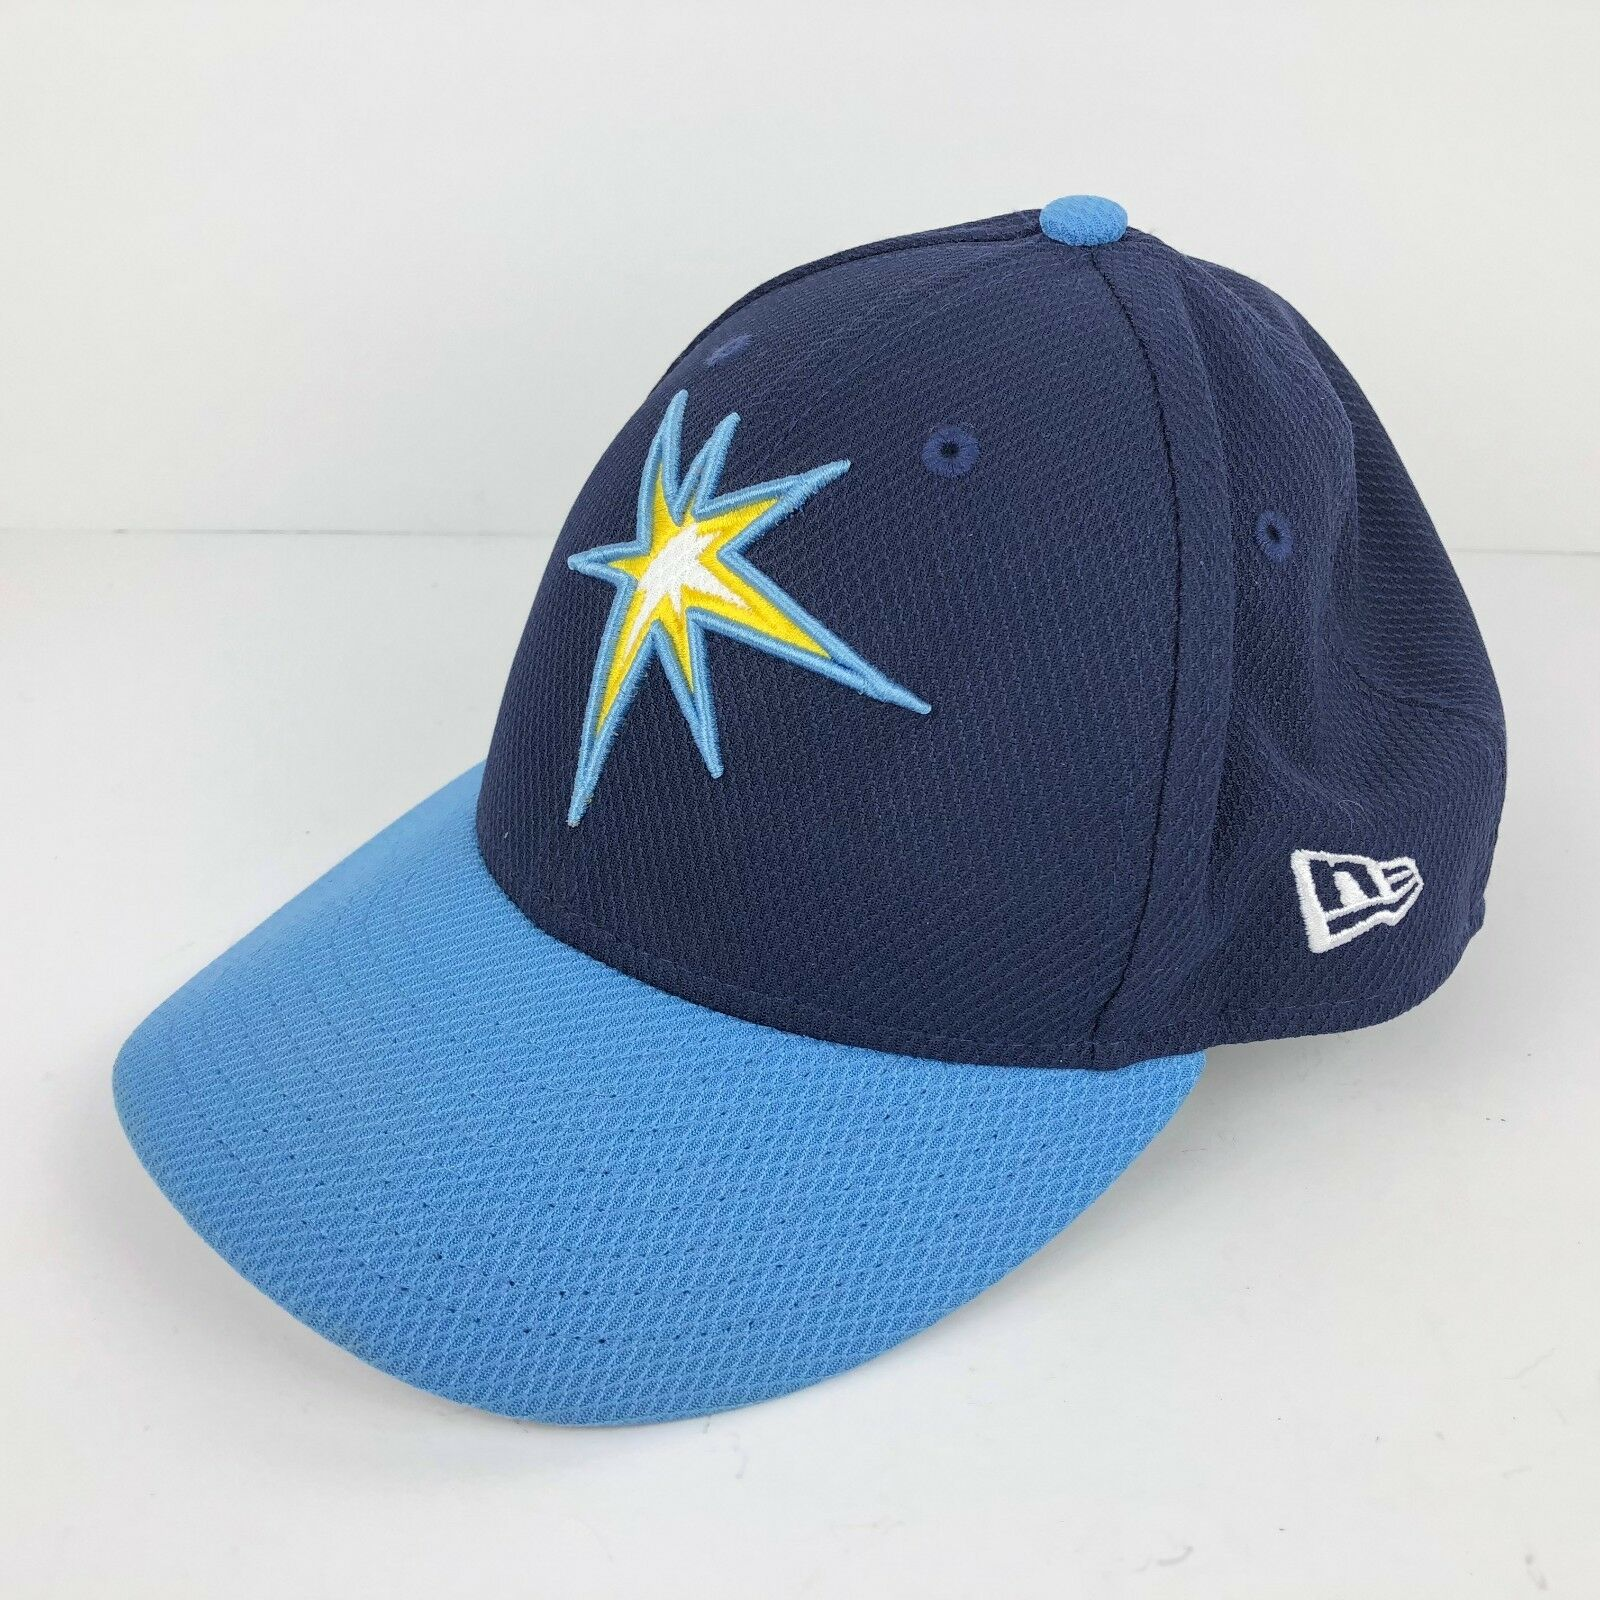 sale retailer c8e5c 28ddd ... batting practice s m 64c31 9e7d8  low cost tampa bay mlb rays new era  59fifty mlb bay baseball cap fitted size 7.5